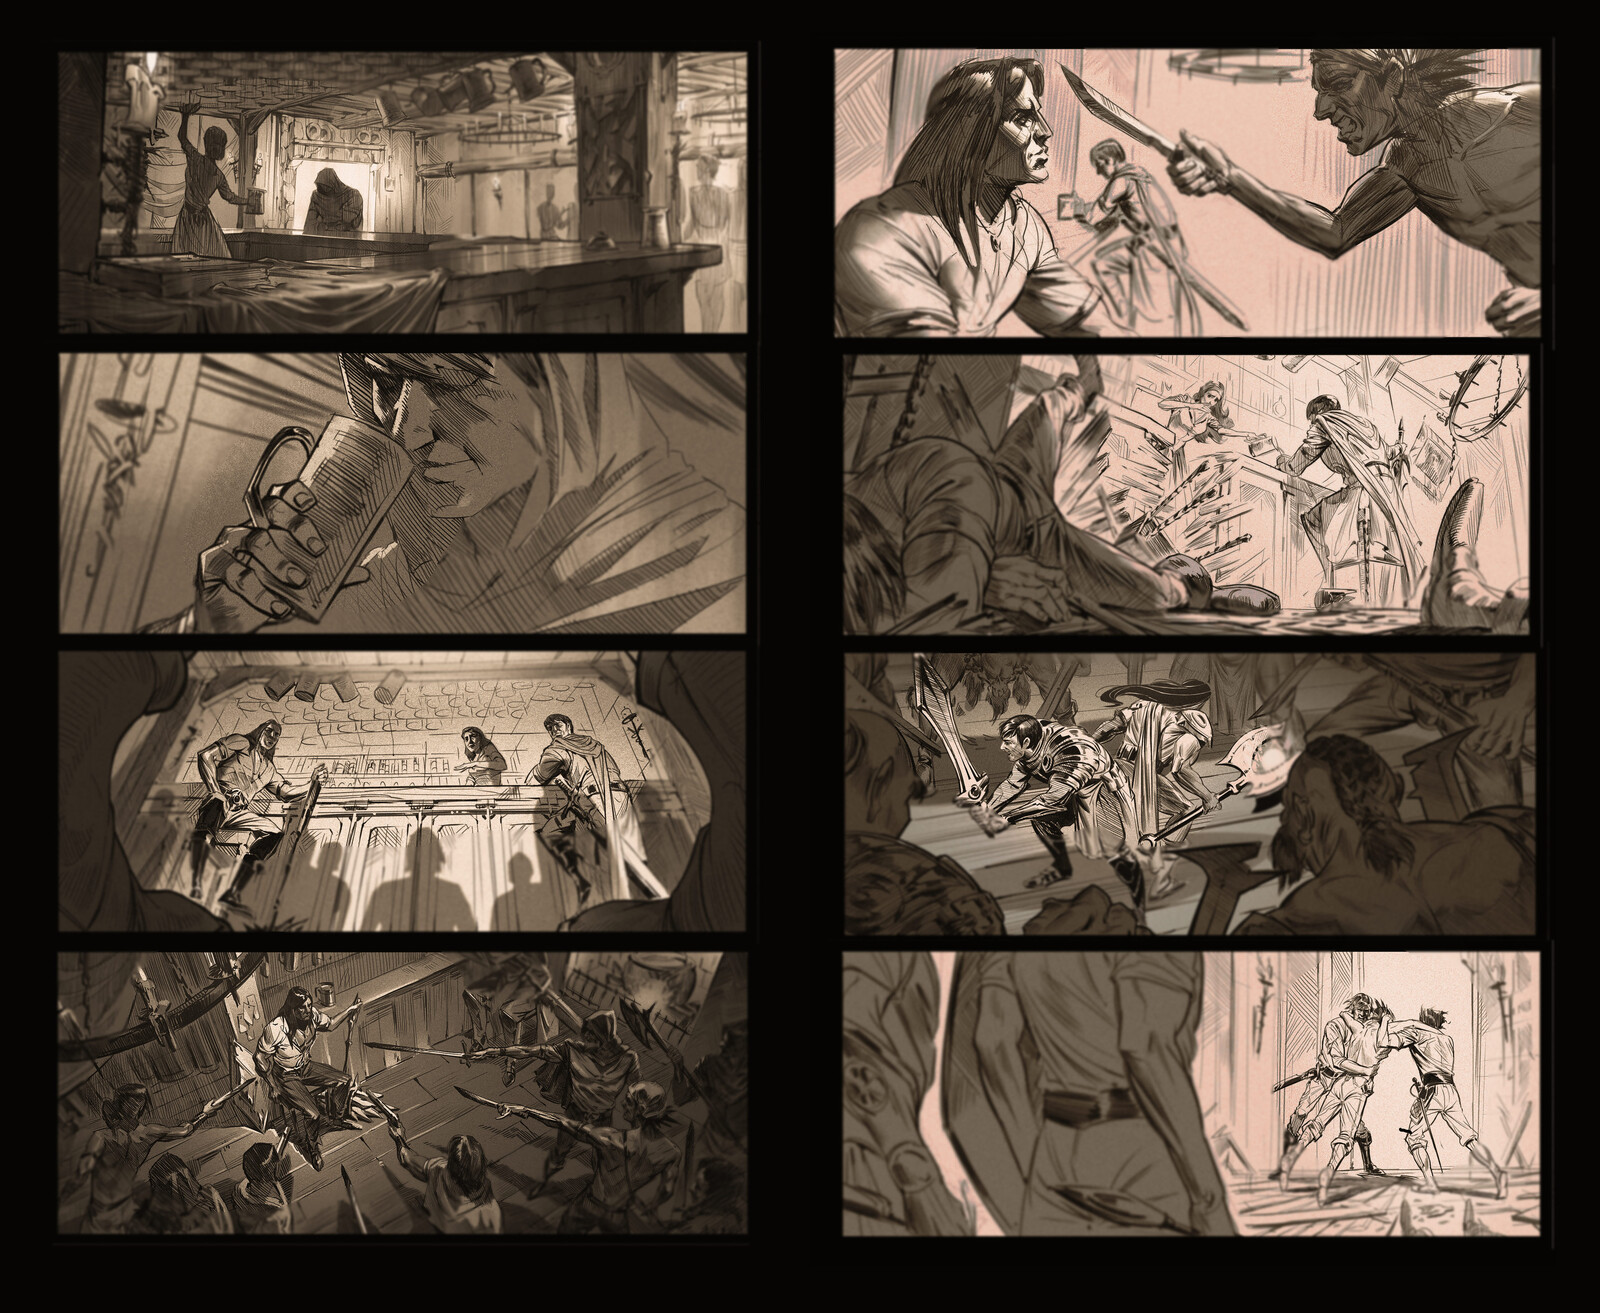 Storyboards/Layouts for various projects